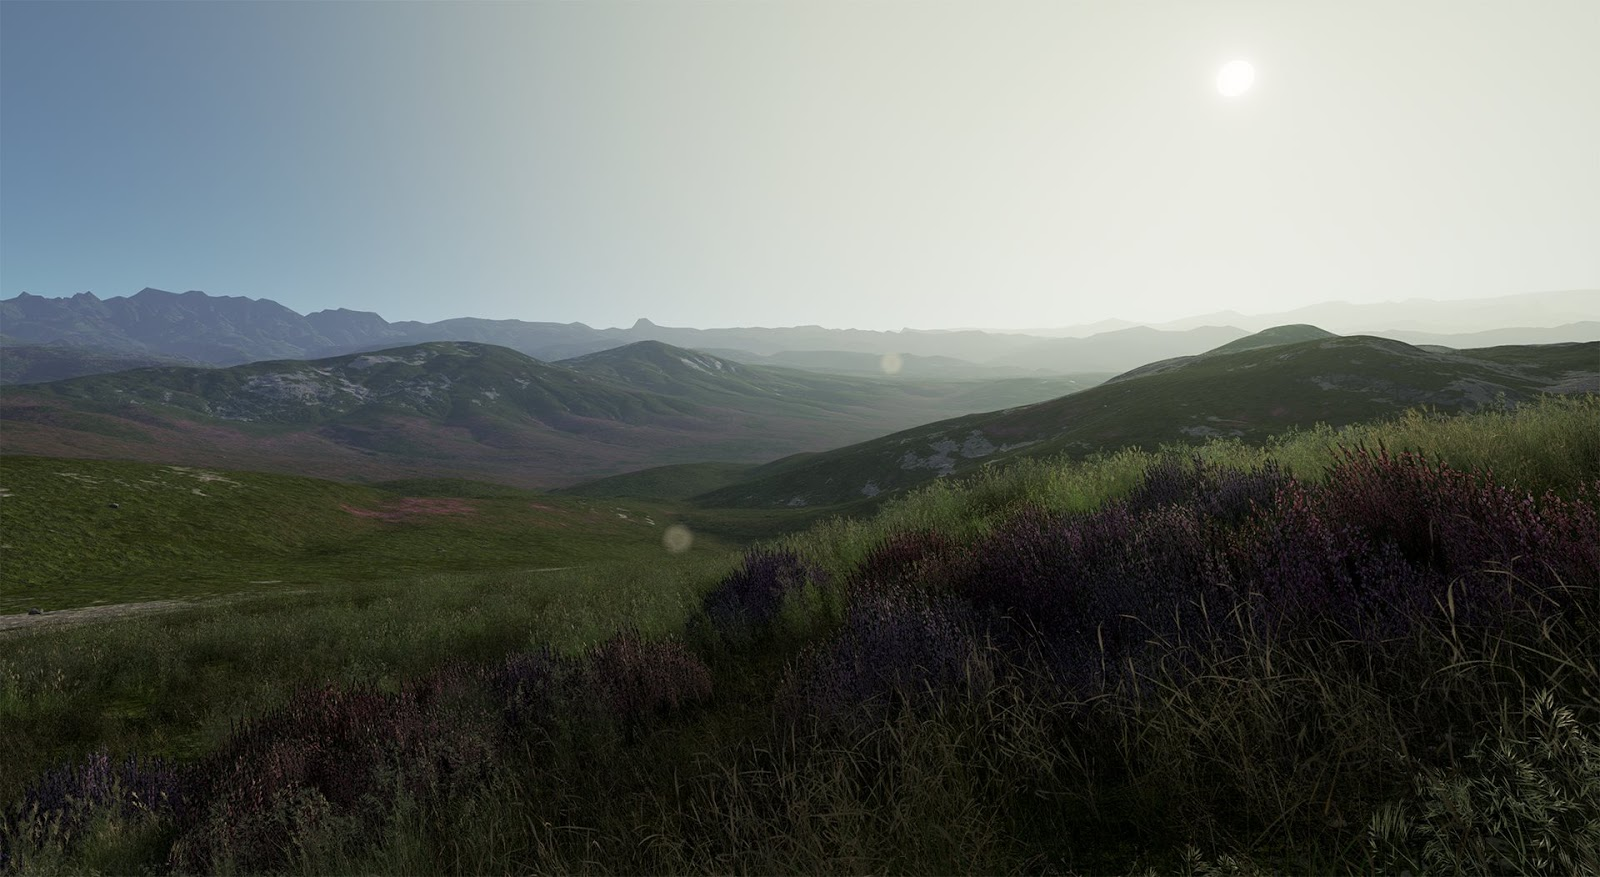 Unreal Engine Photorealistic Landscape Pack 4 | Computer